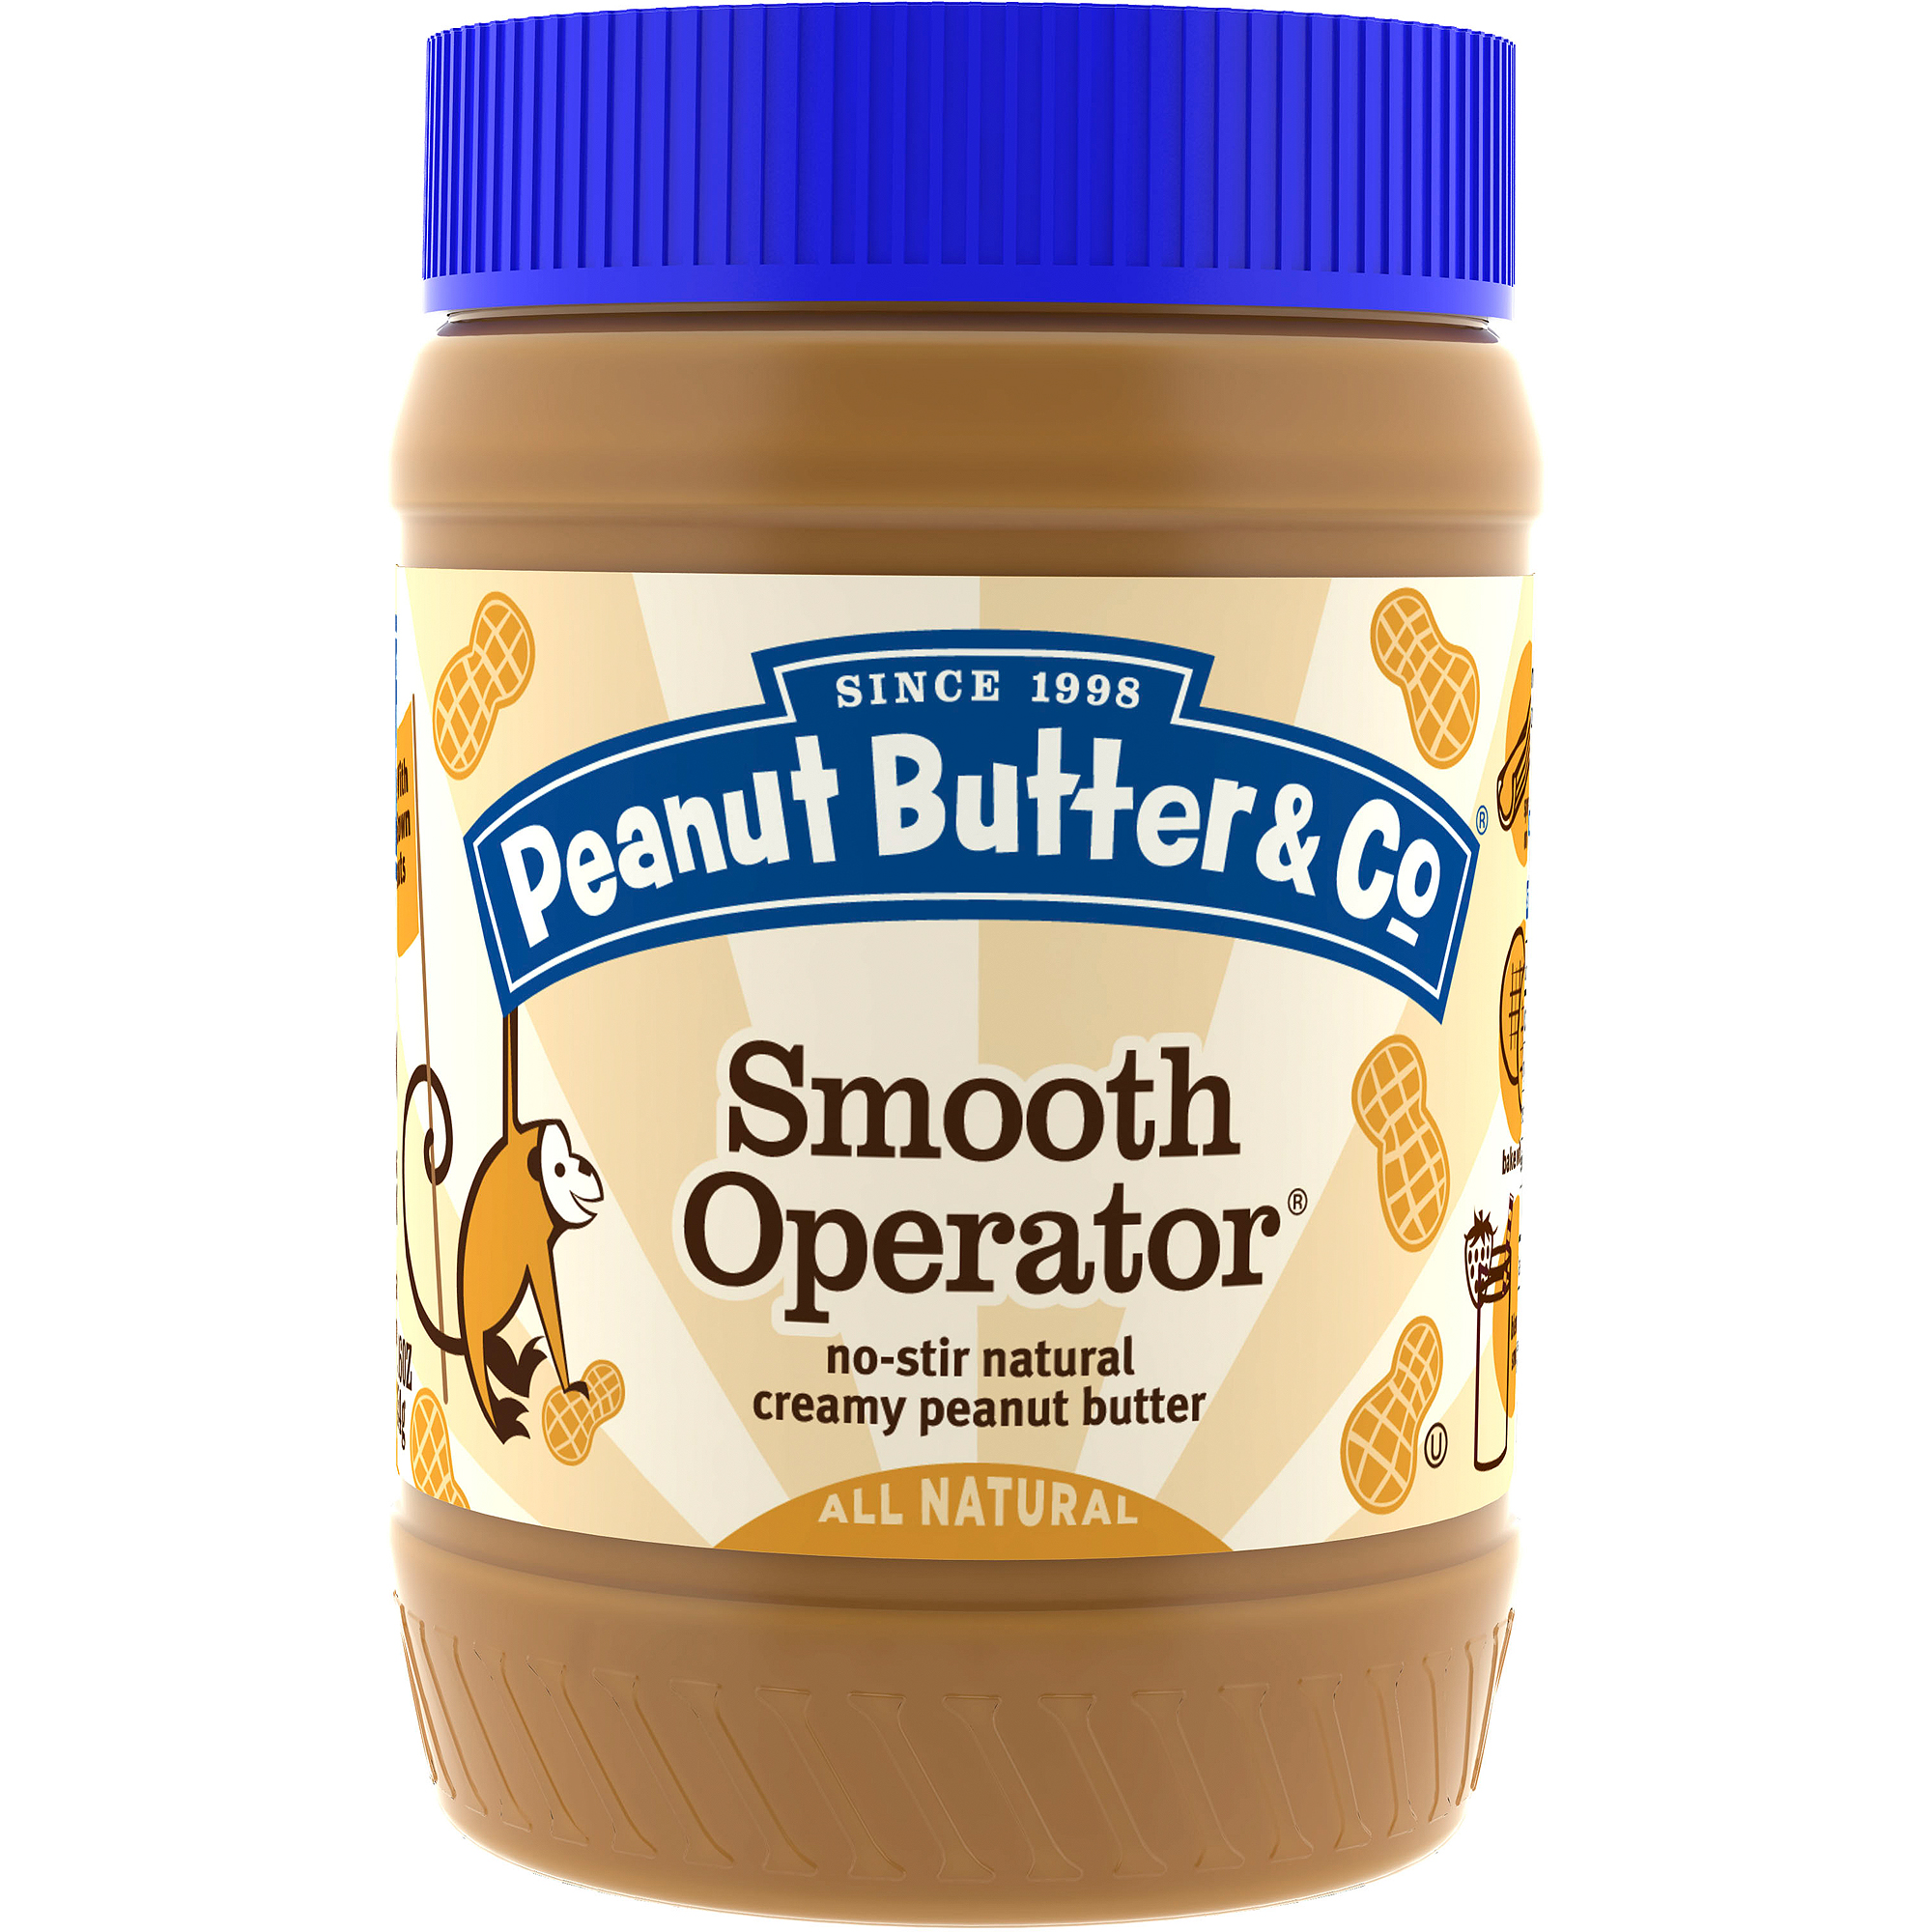 Peanut Butter & Co. Smooth Operator Peanut Butter, 16 oz  (Pack of 6)